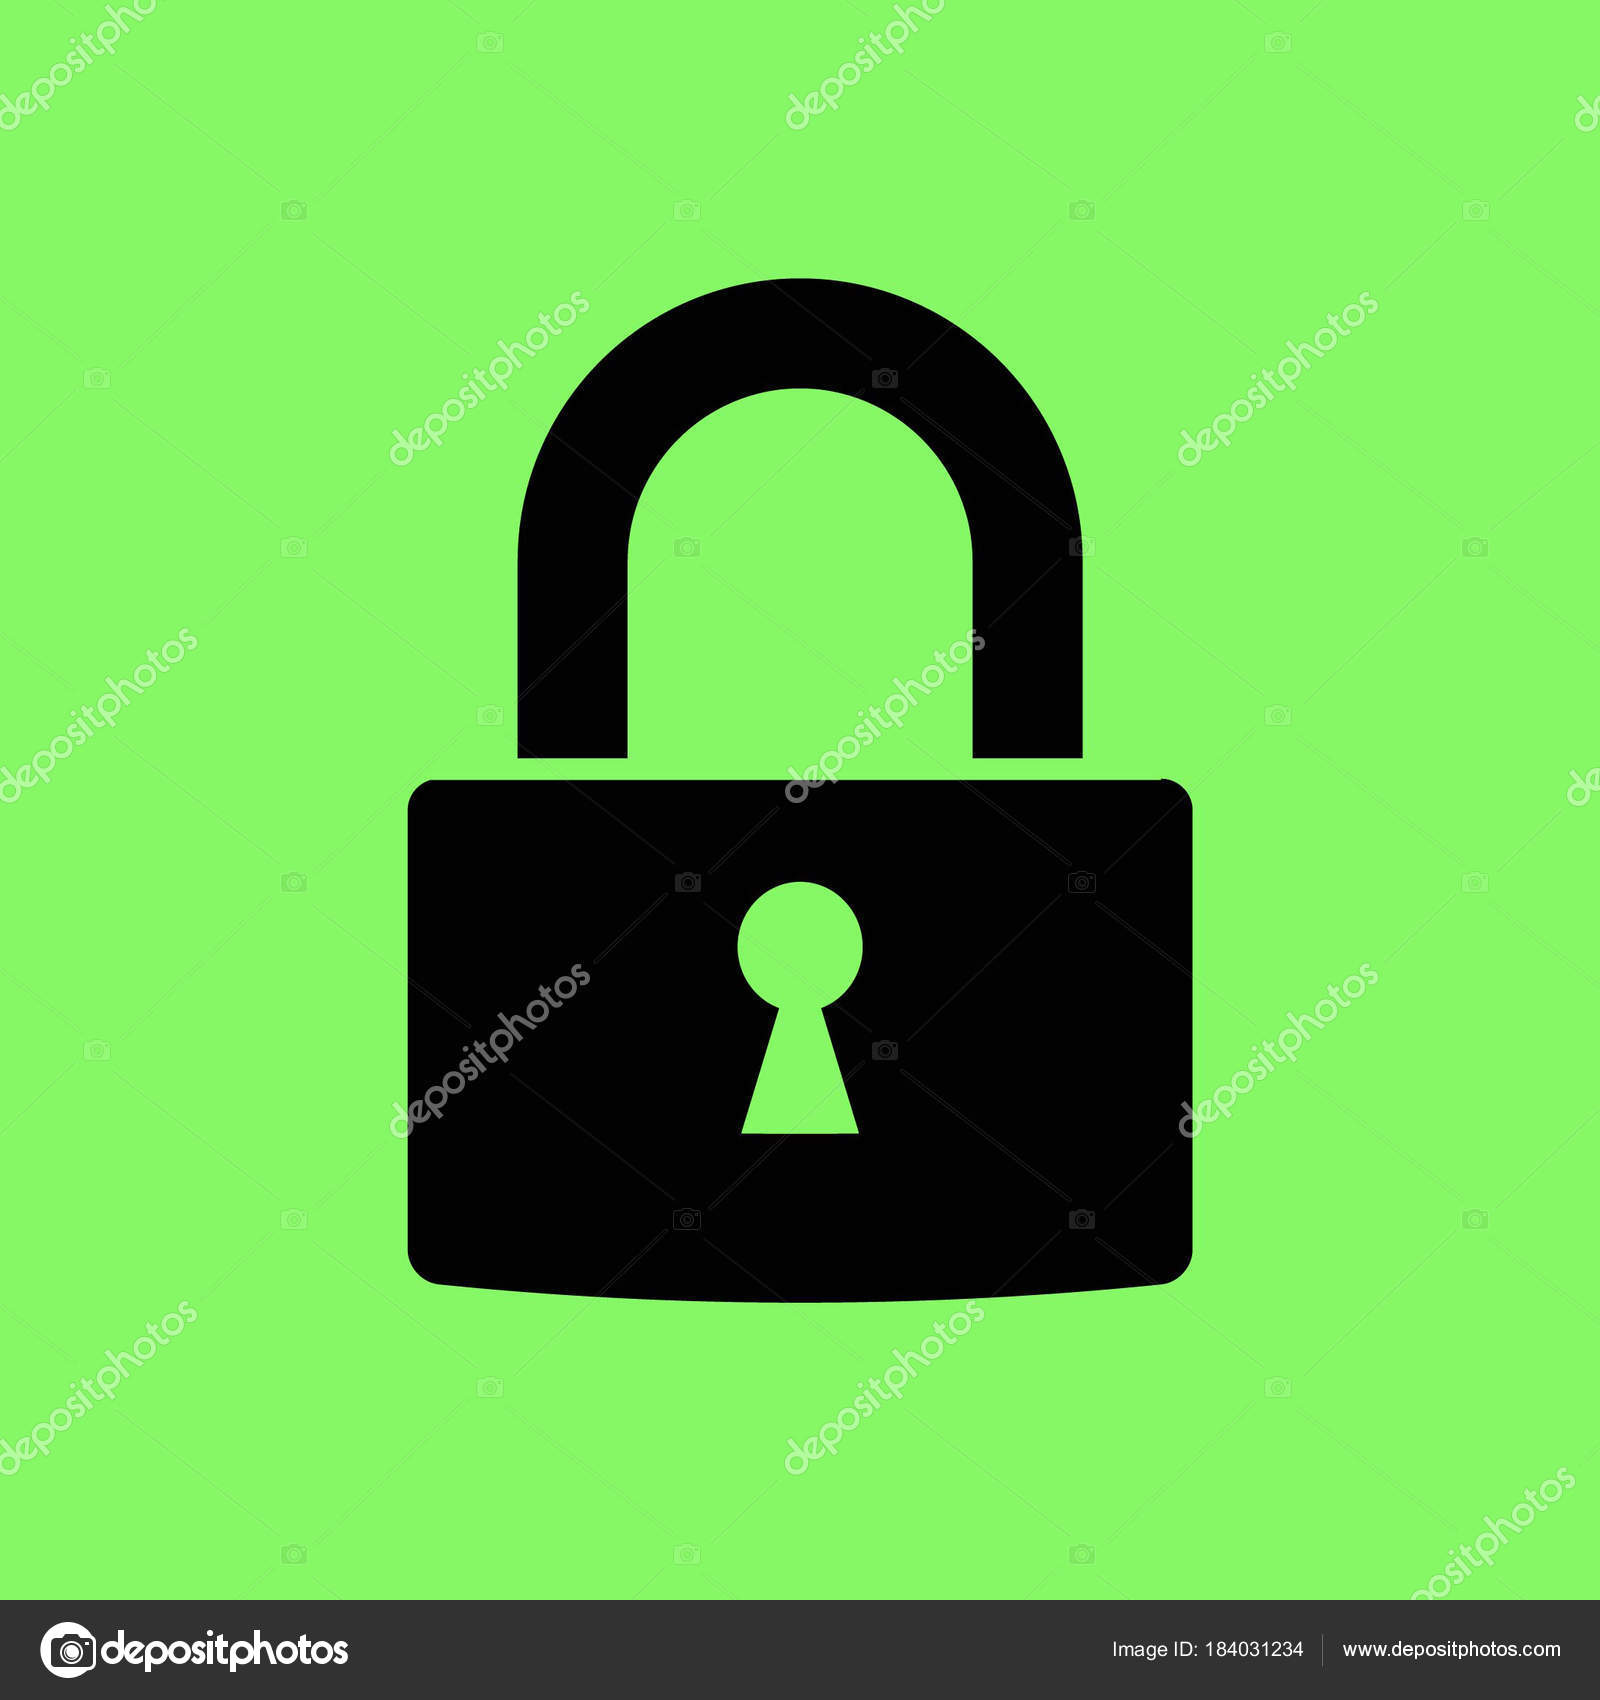 lock vector icon green background stock vector risovalka2015 rh depositphotos com padlock vector art heart padlock vector